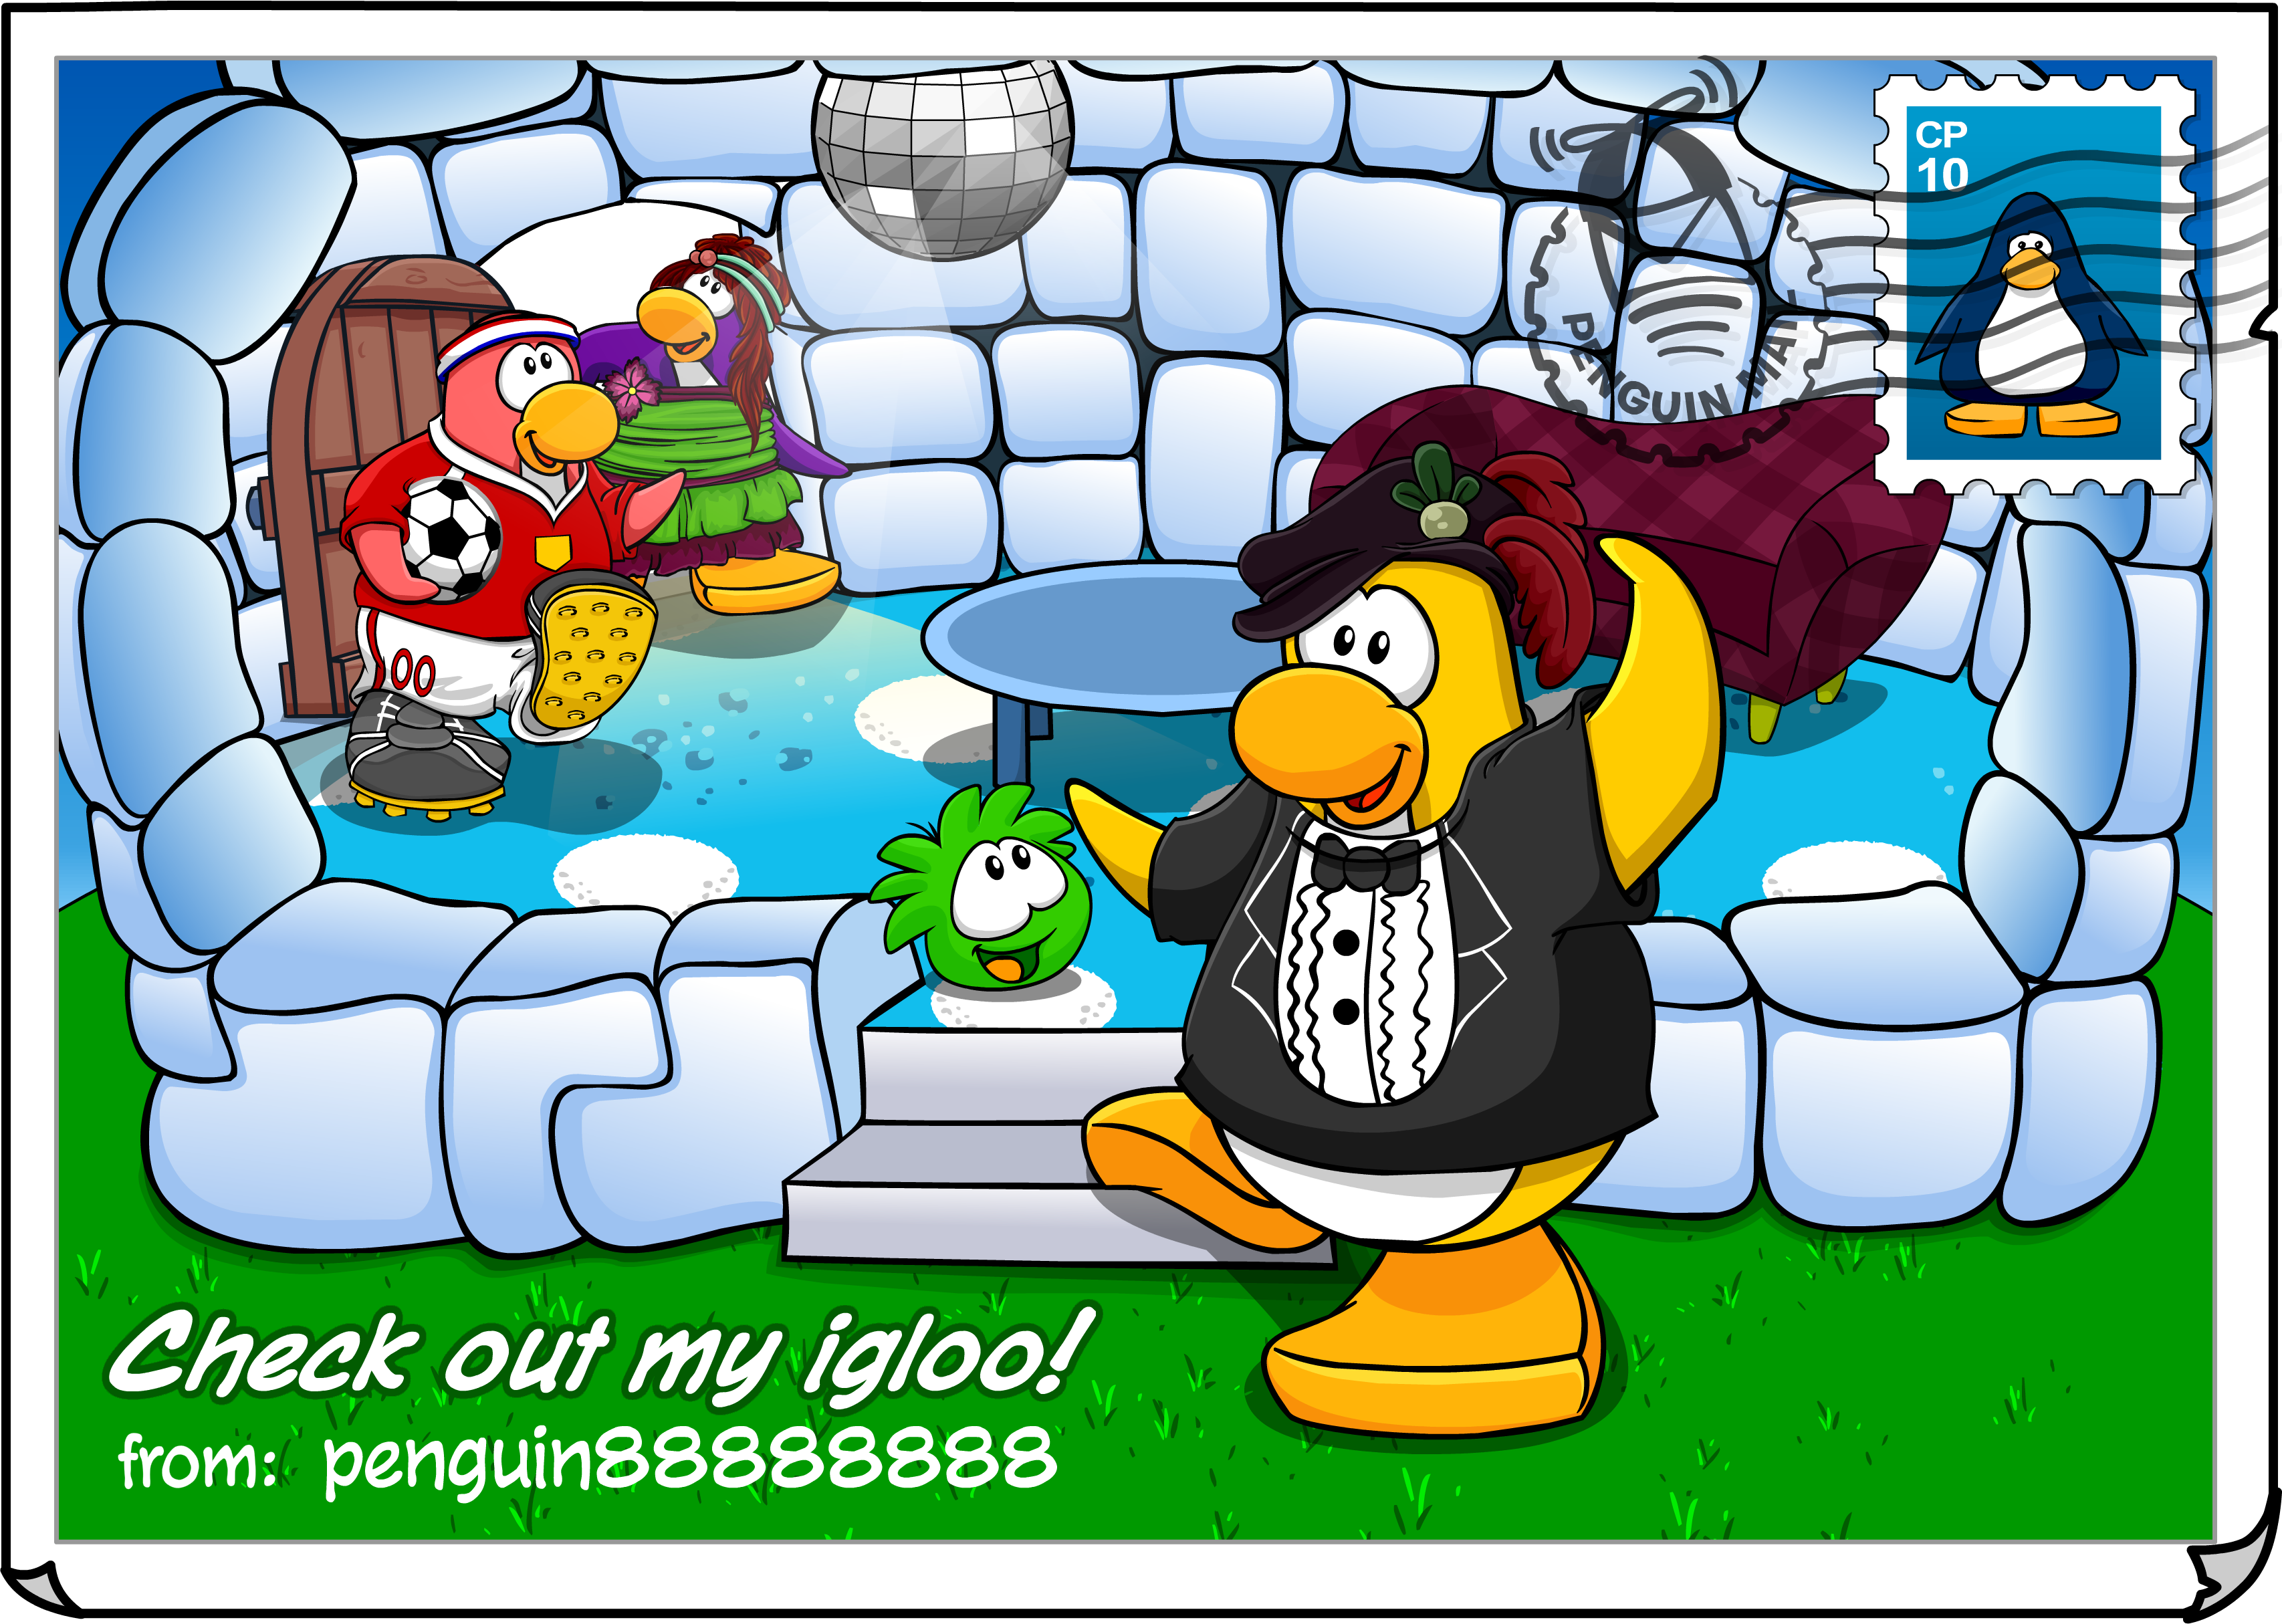 File:Check out my igloo postcard.png